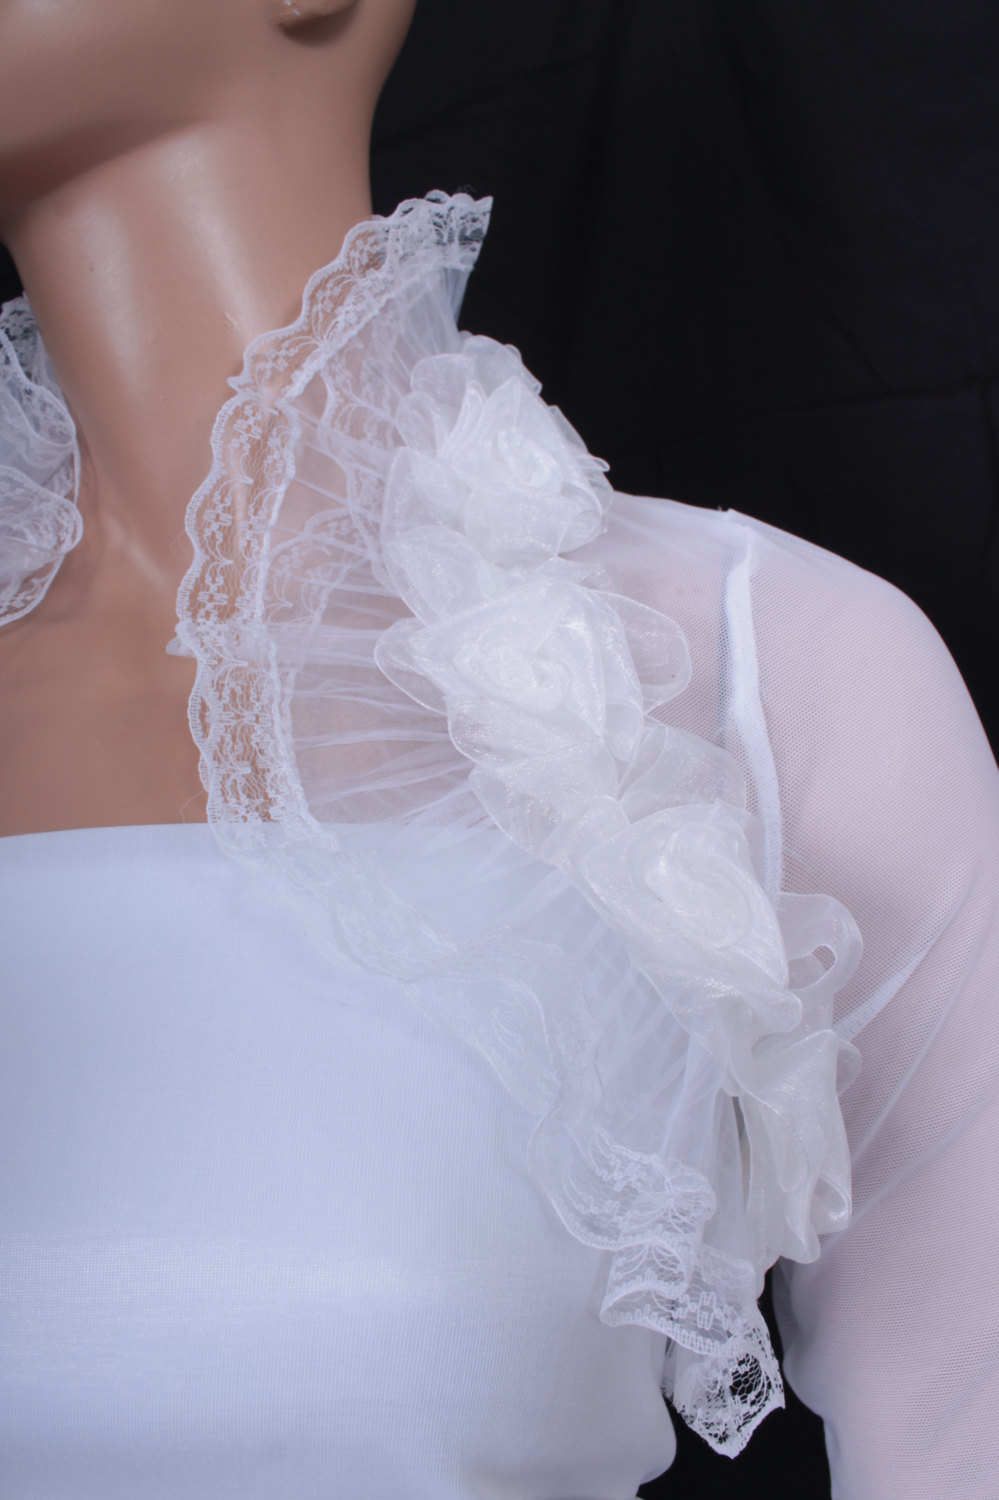 Bridal Optical White fluffy ruffles shrug jacket wedding bolero